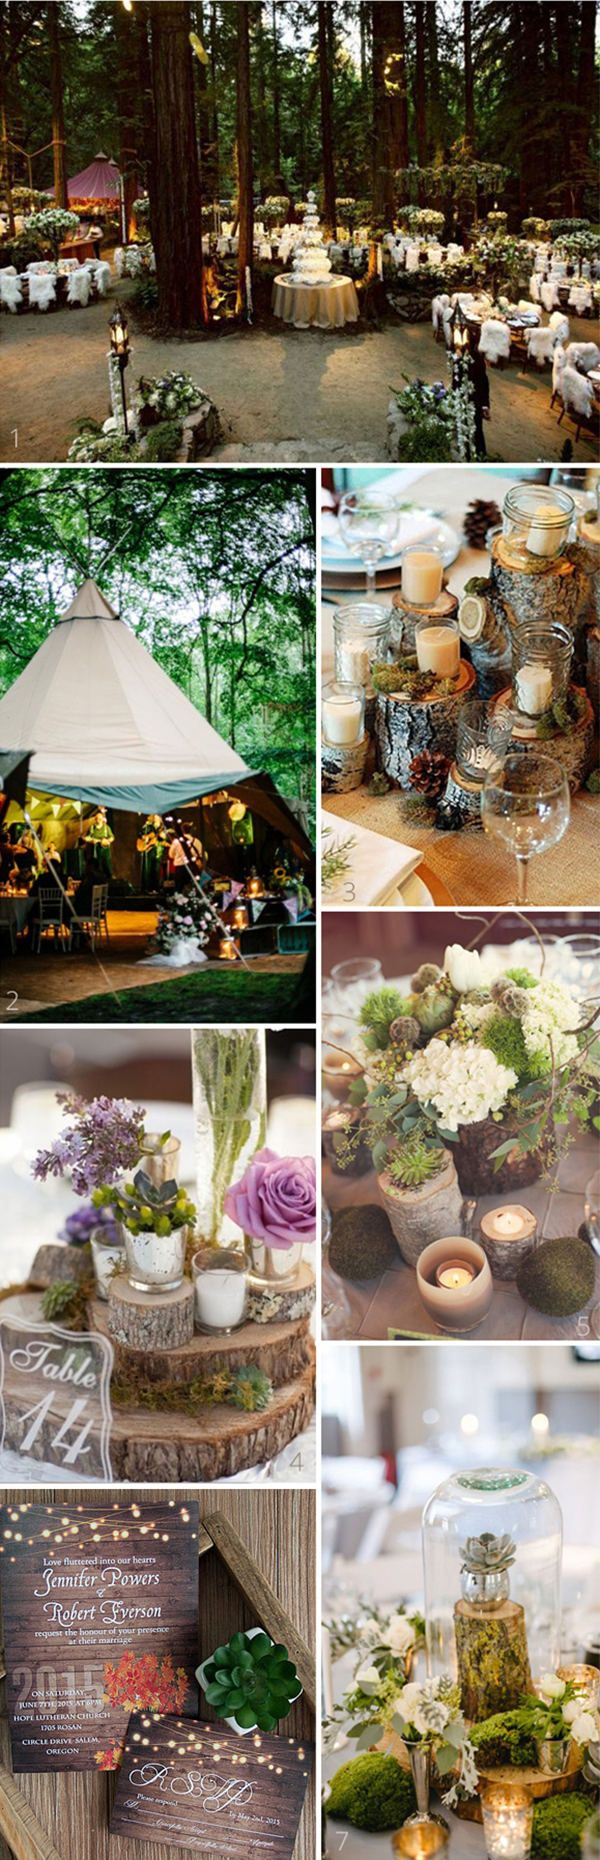 28 Whimsical And Chic Woodland Wedding Ideas With Rustic Wedding Invites